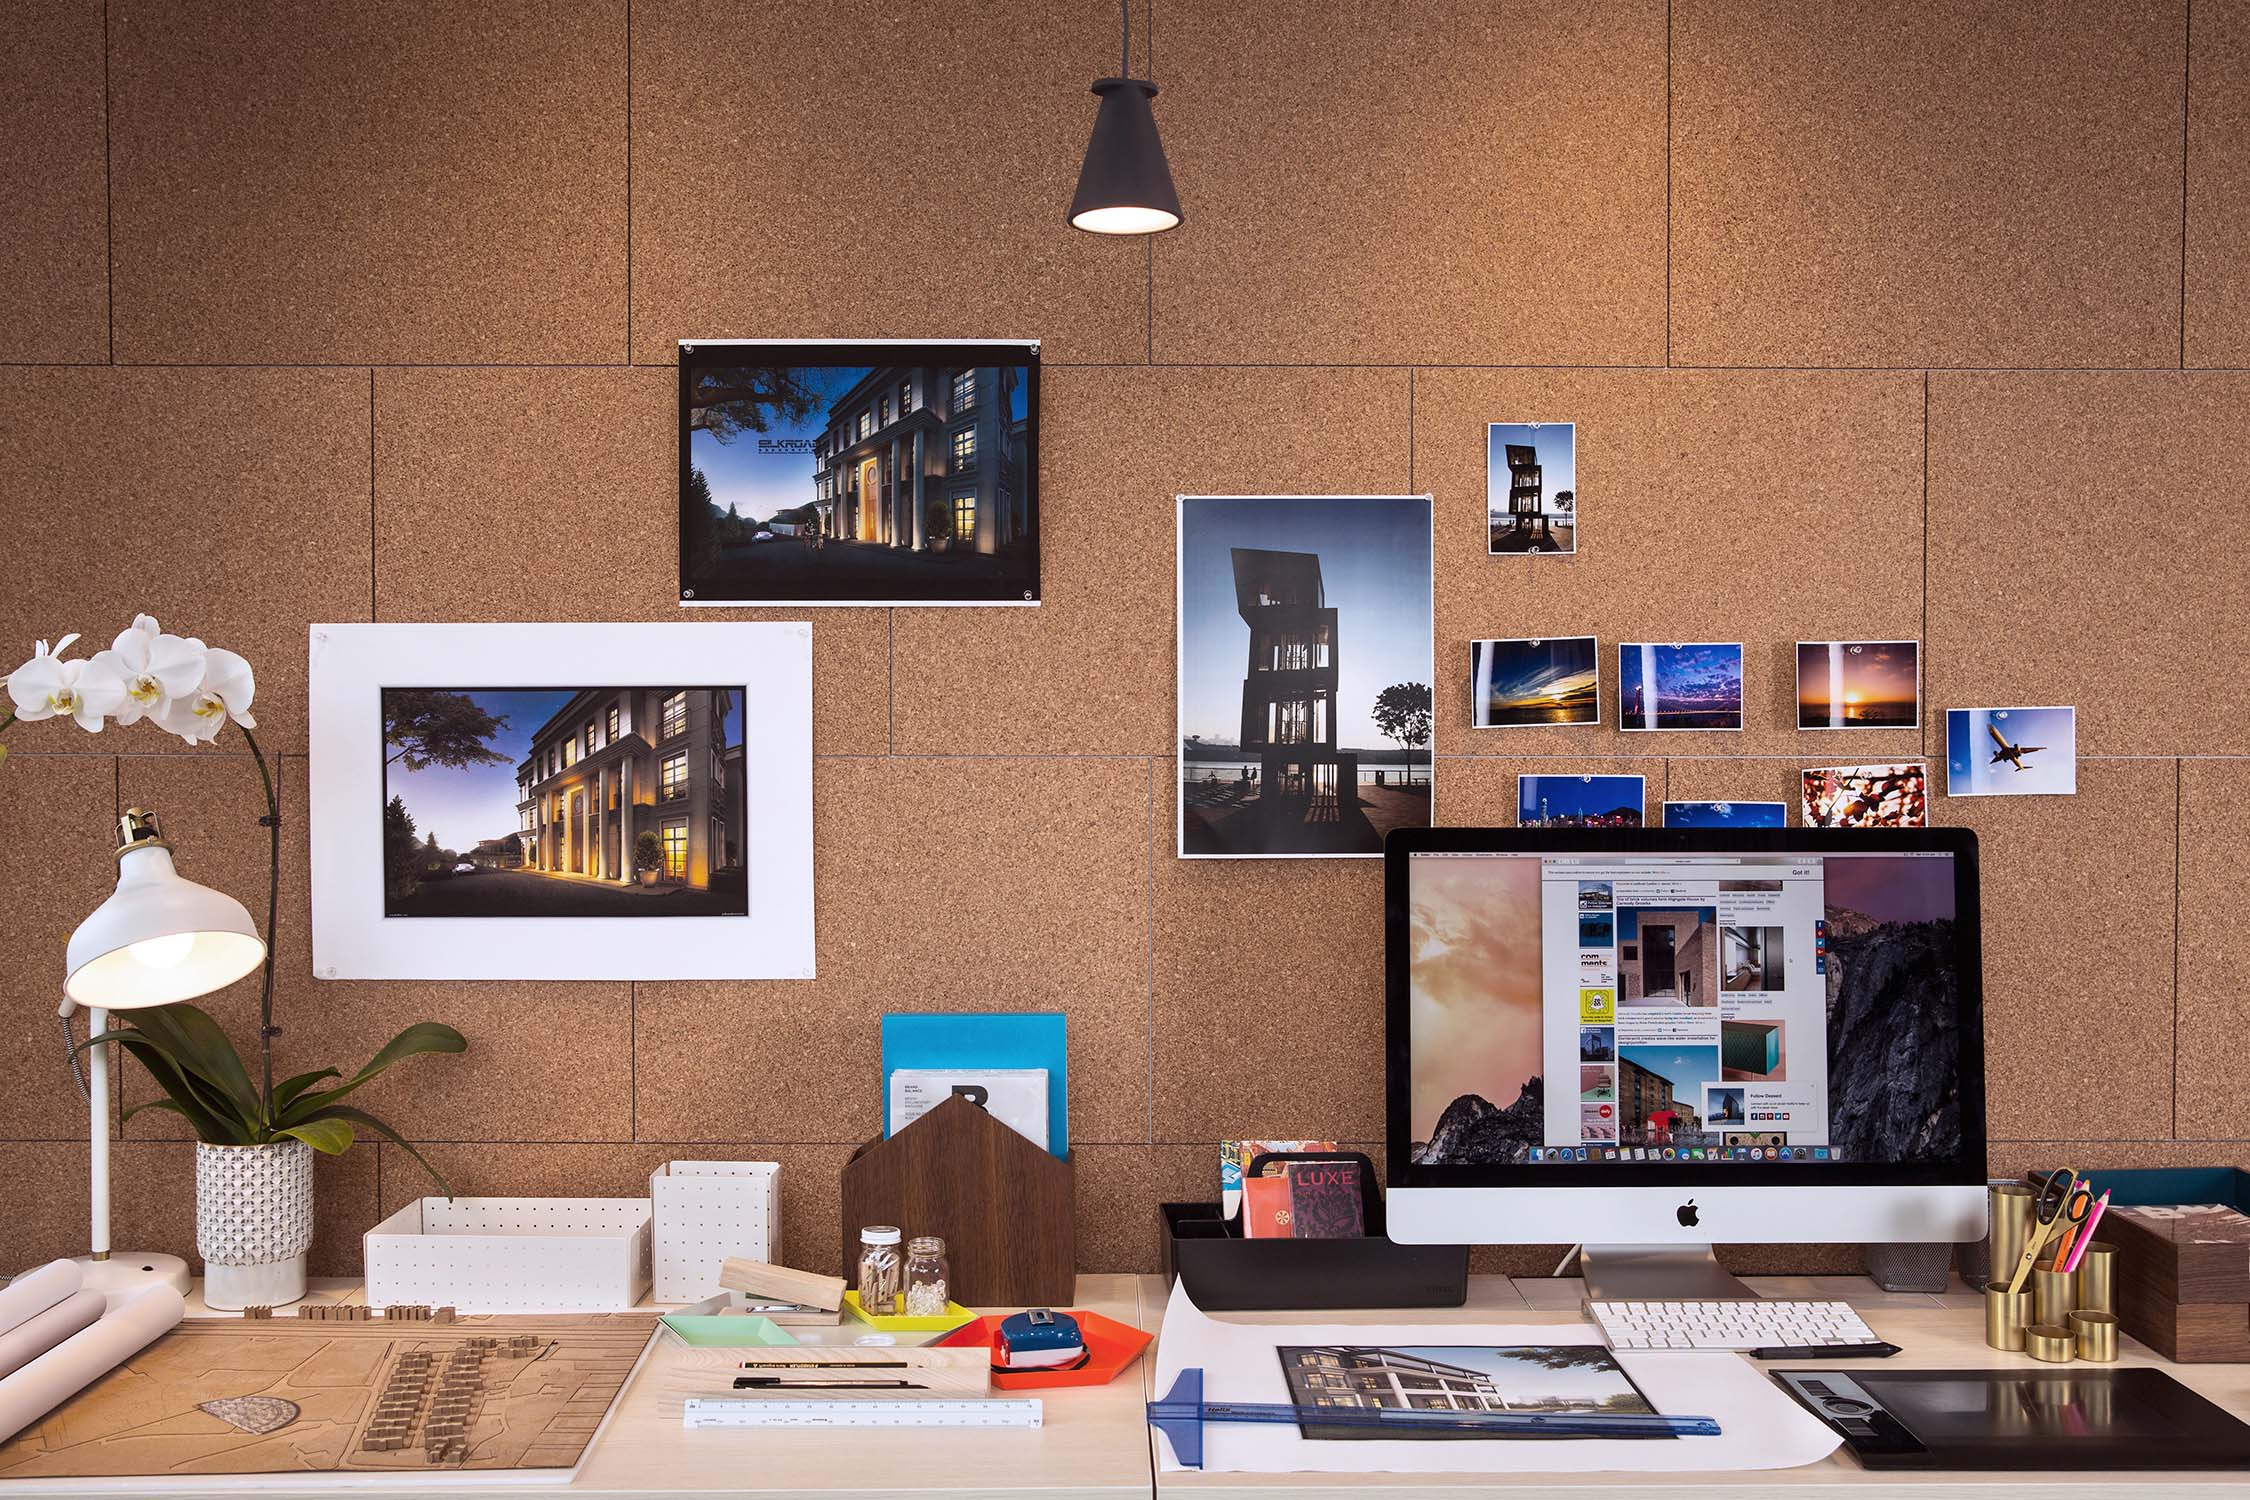 21_Bean Buro_Web_Workplace_The Work Project.jpg